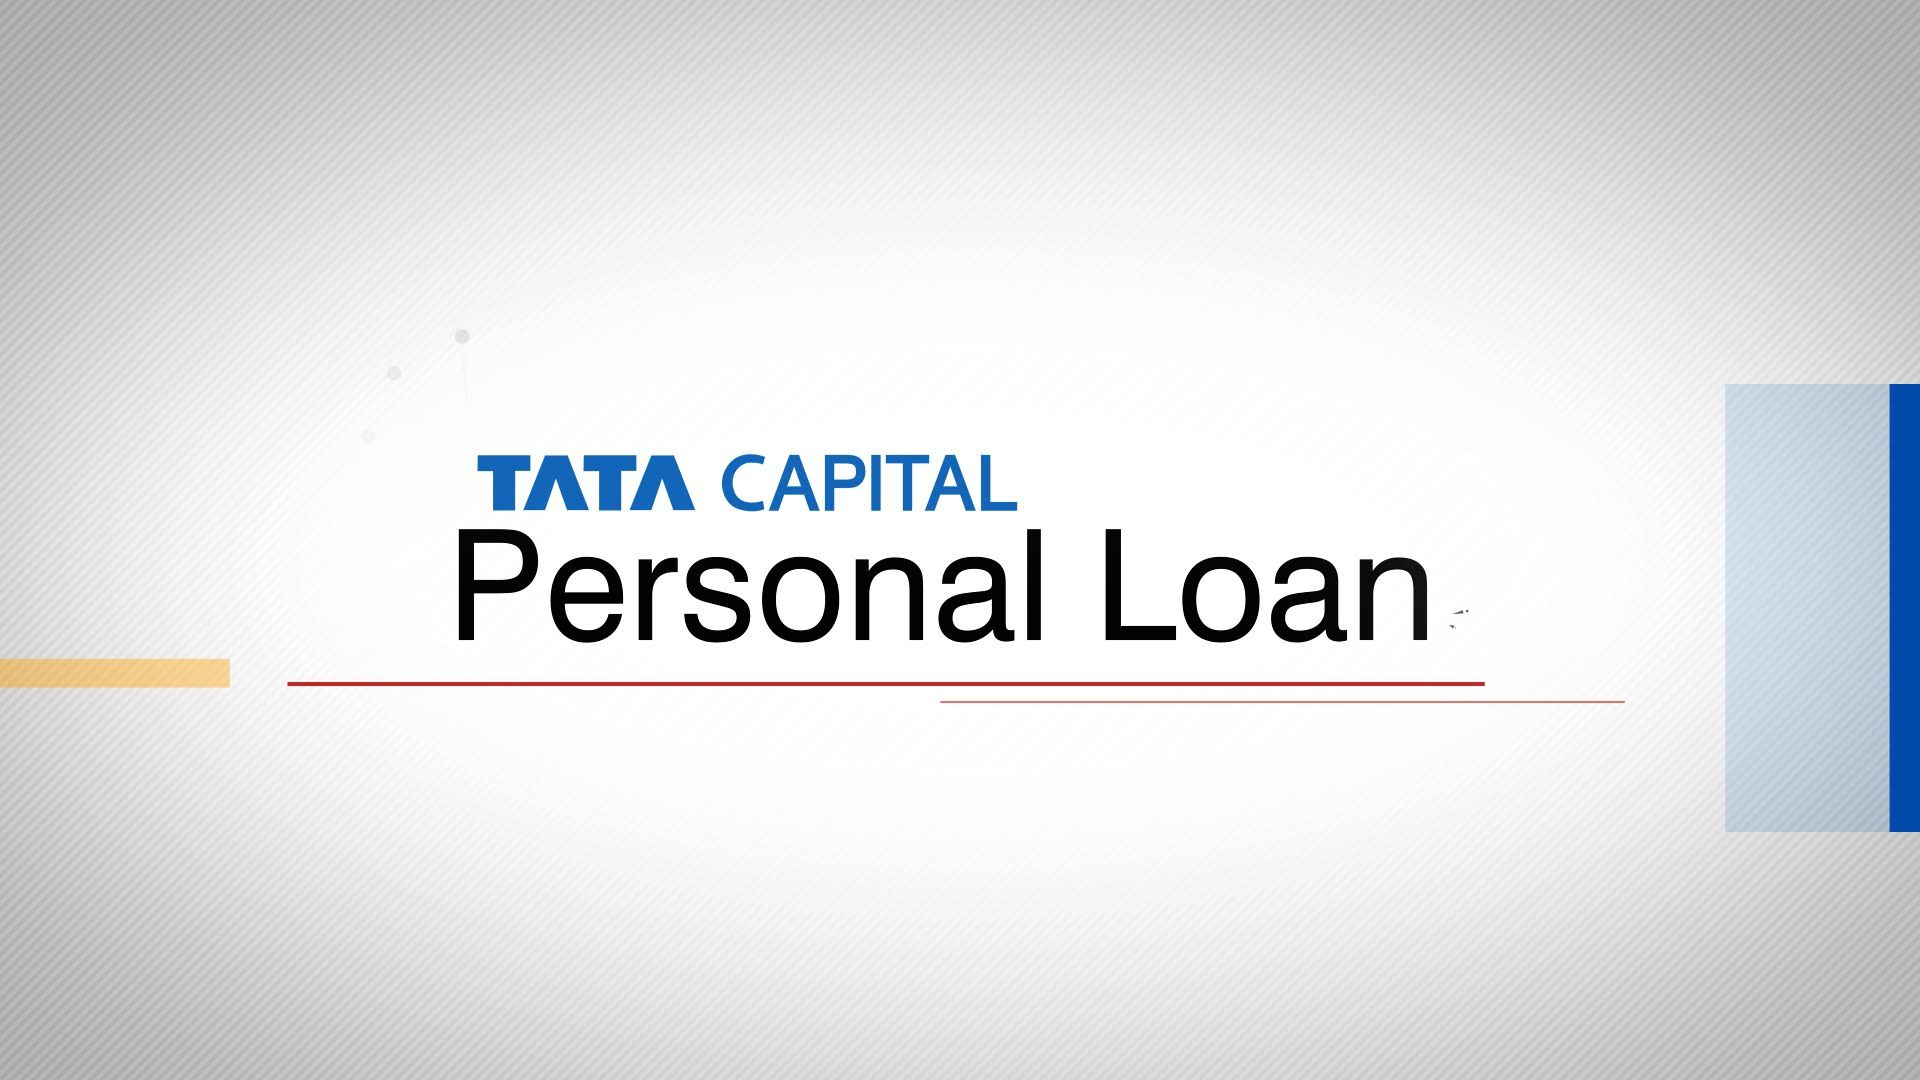 News Videos More How To Apply For A Tata Capital Personal Loan On Bankbazaar Com Music Videos News Check More At Https Rocks Personal Loans Tata Loan